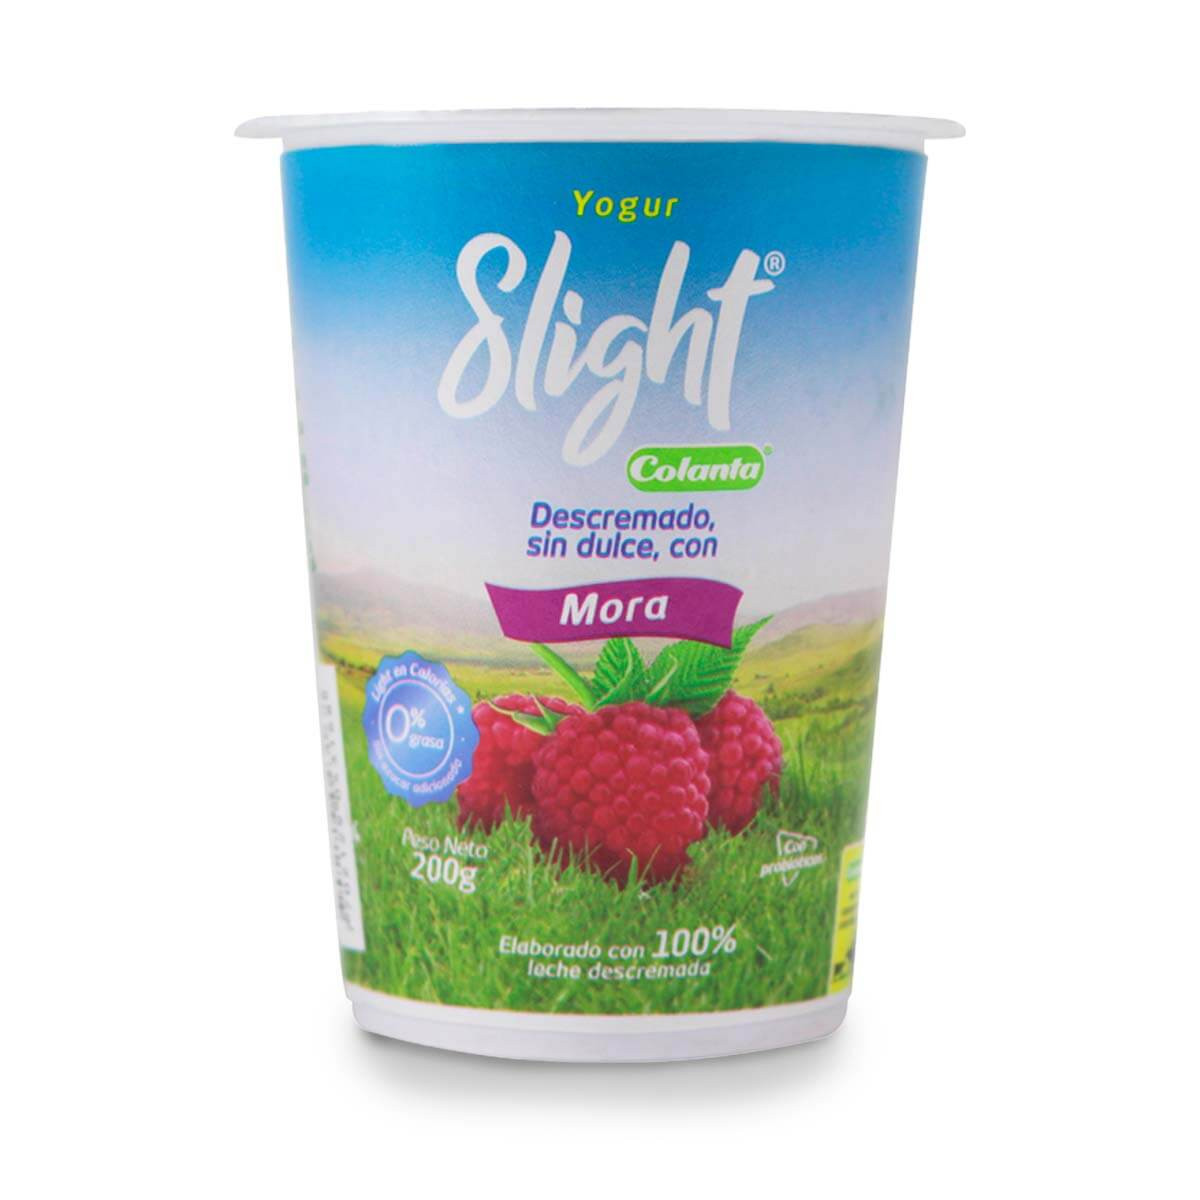 YOGURT SLIGHT COLANTA 200M VASO MORA